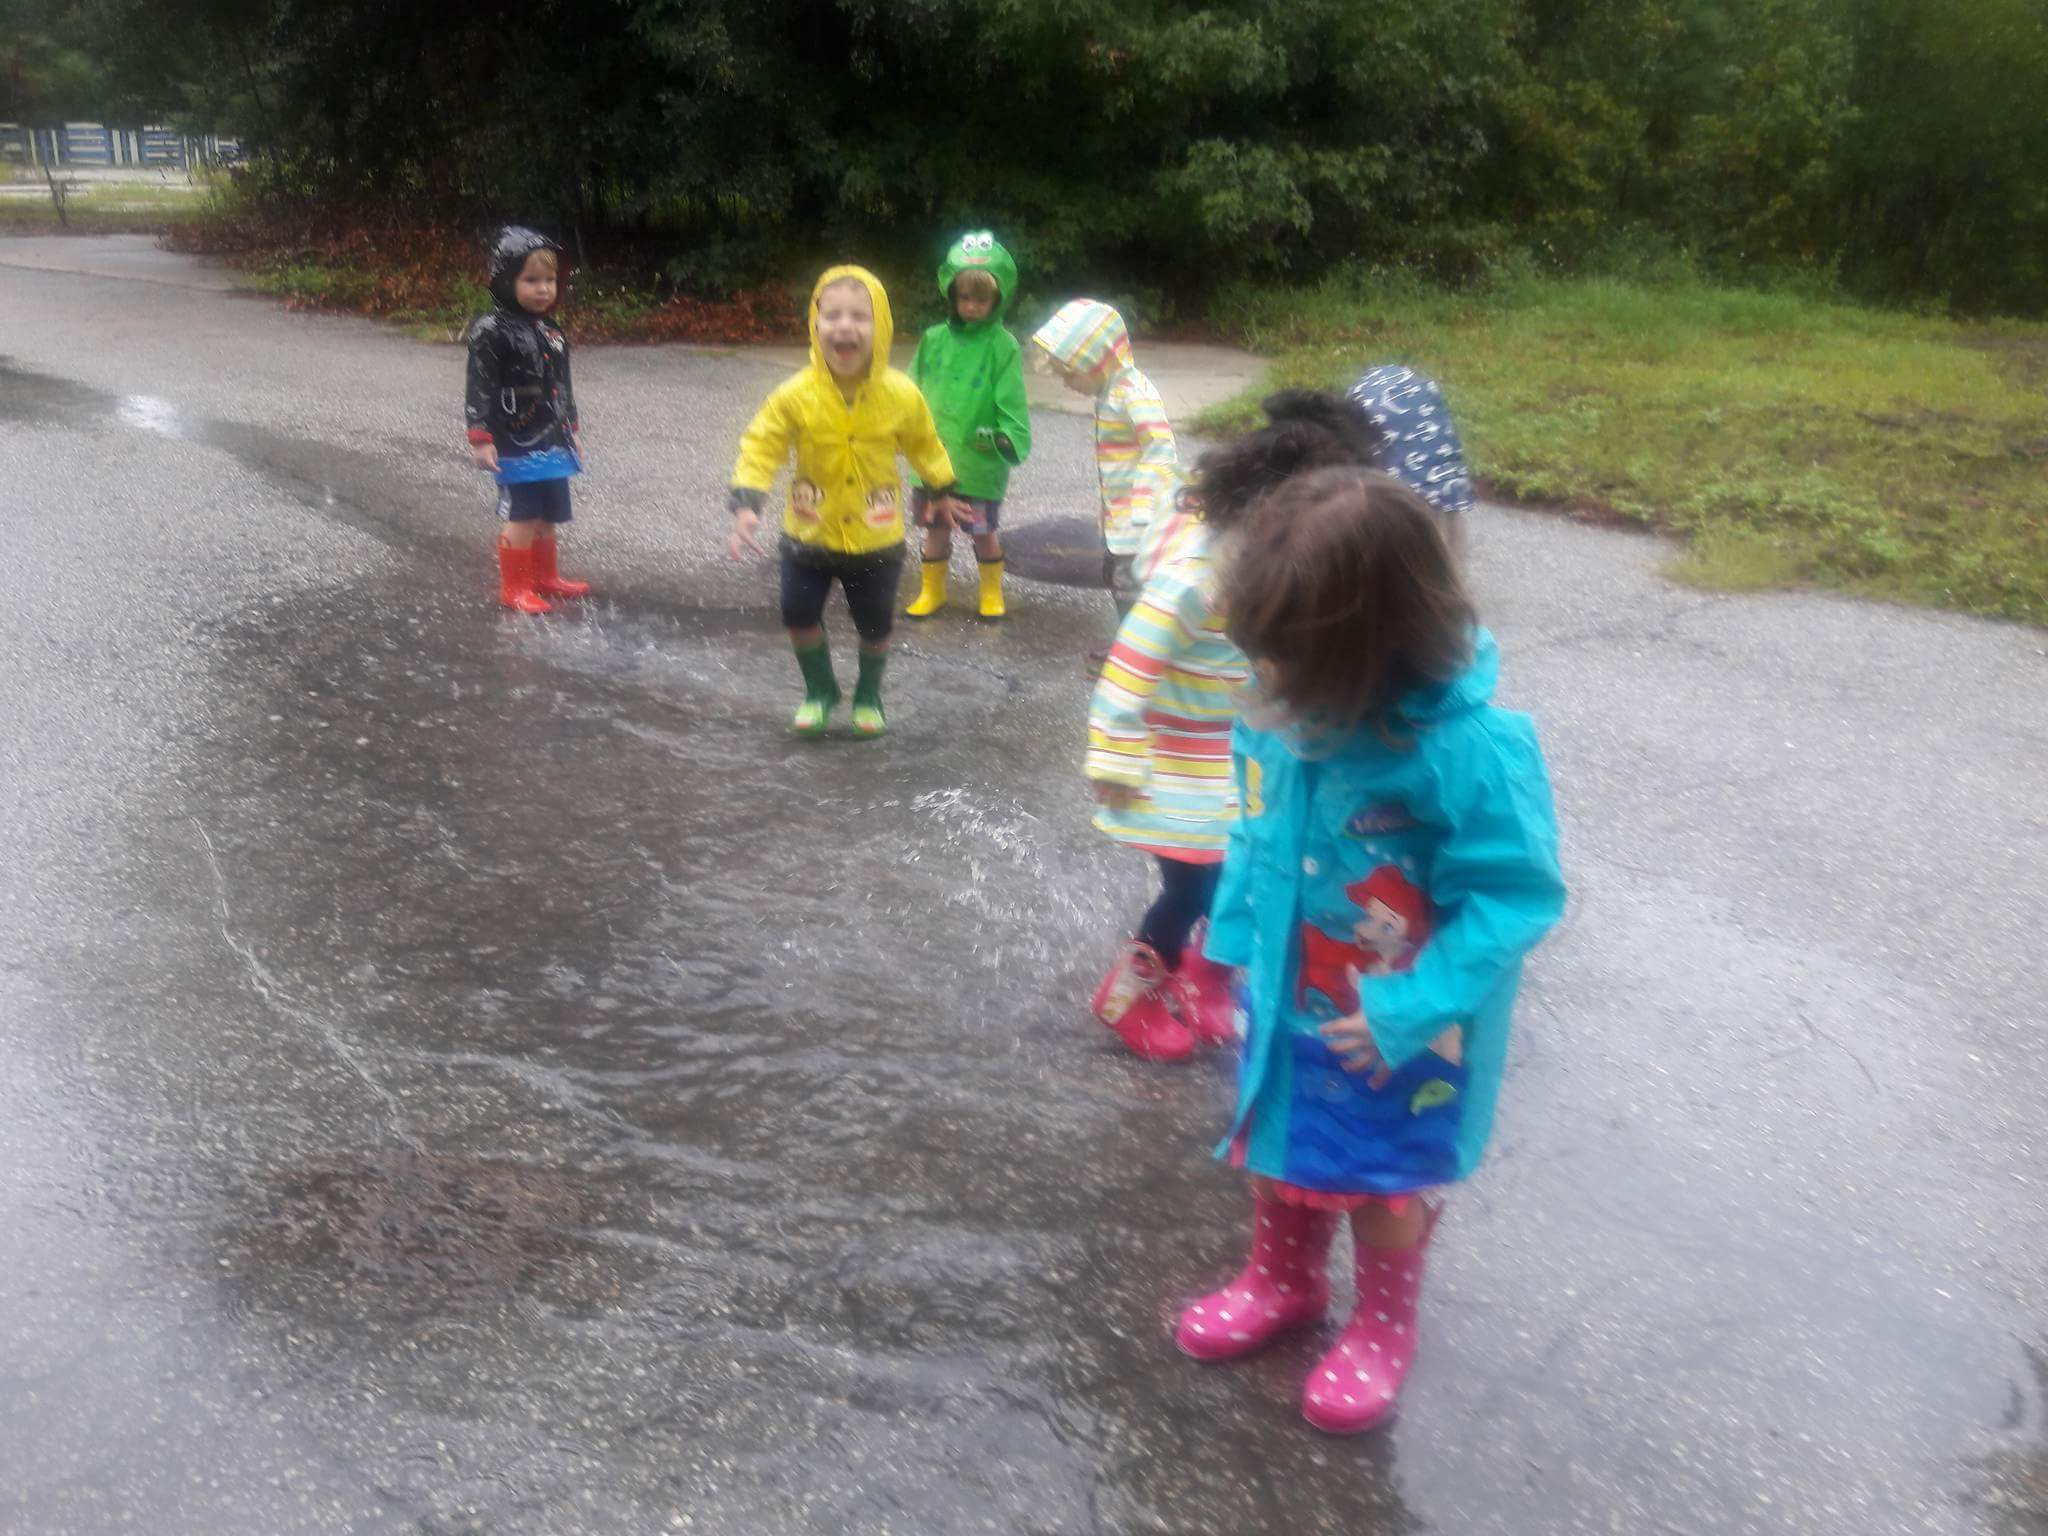 Kids play in rain